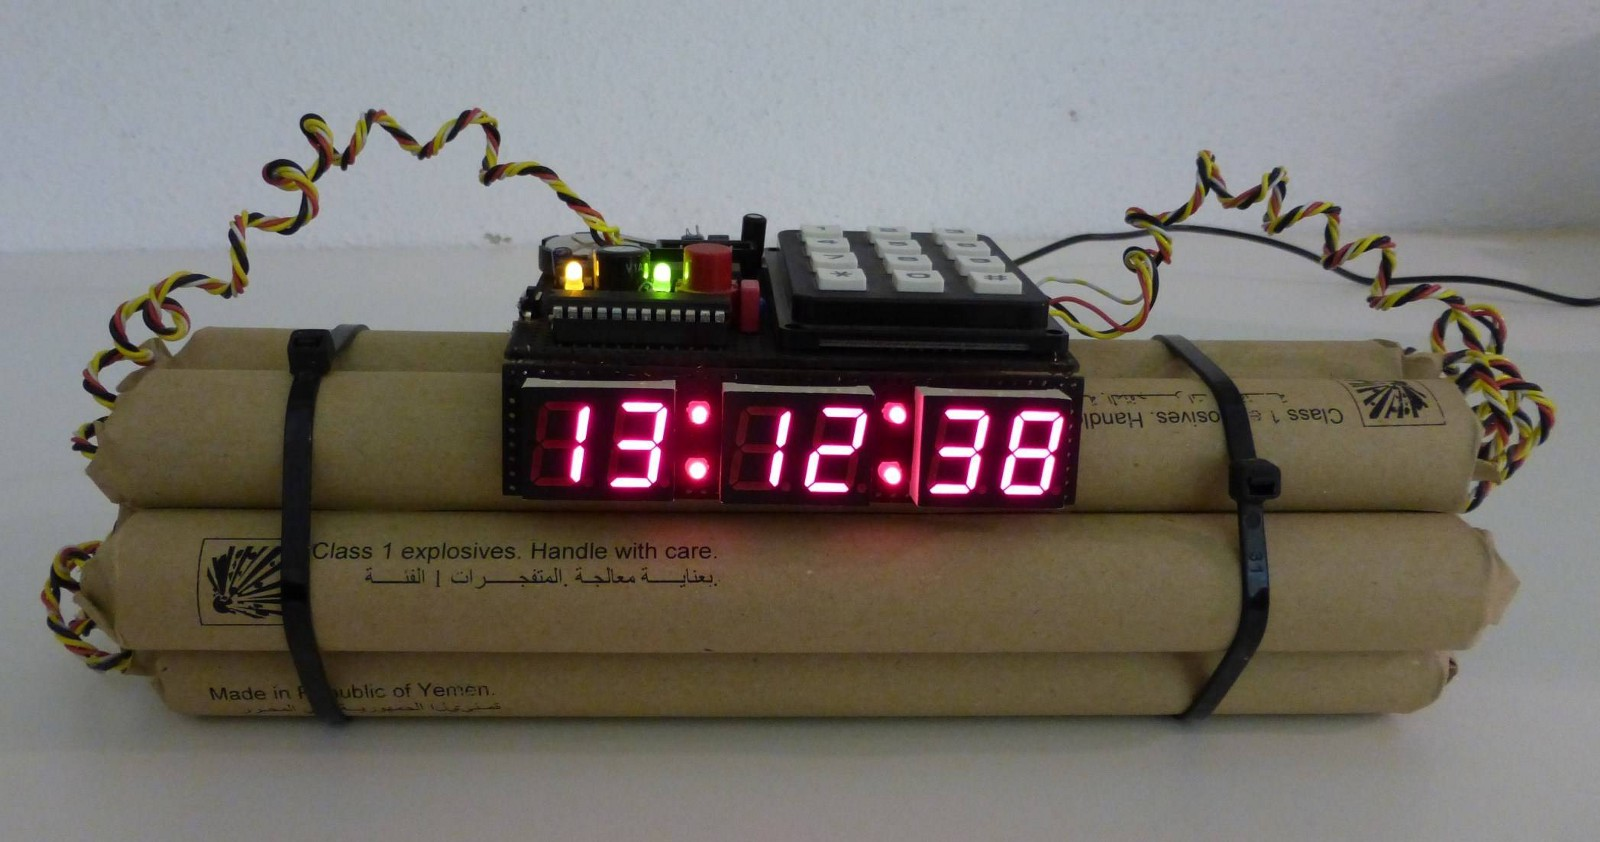 Unusual Clocks Ied Awareness For First Responders Homeland Security